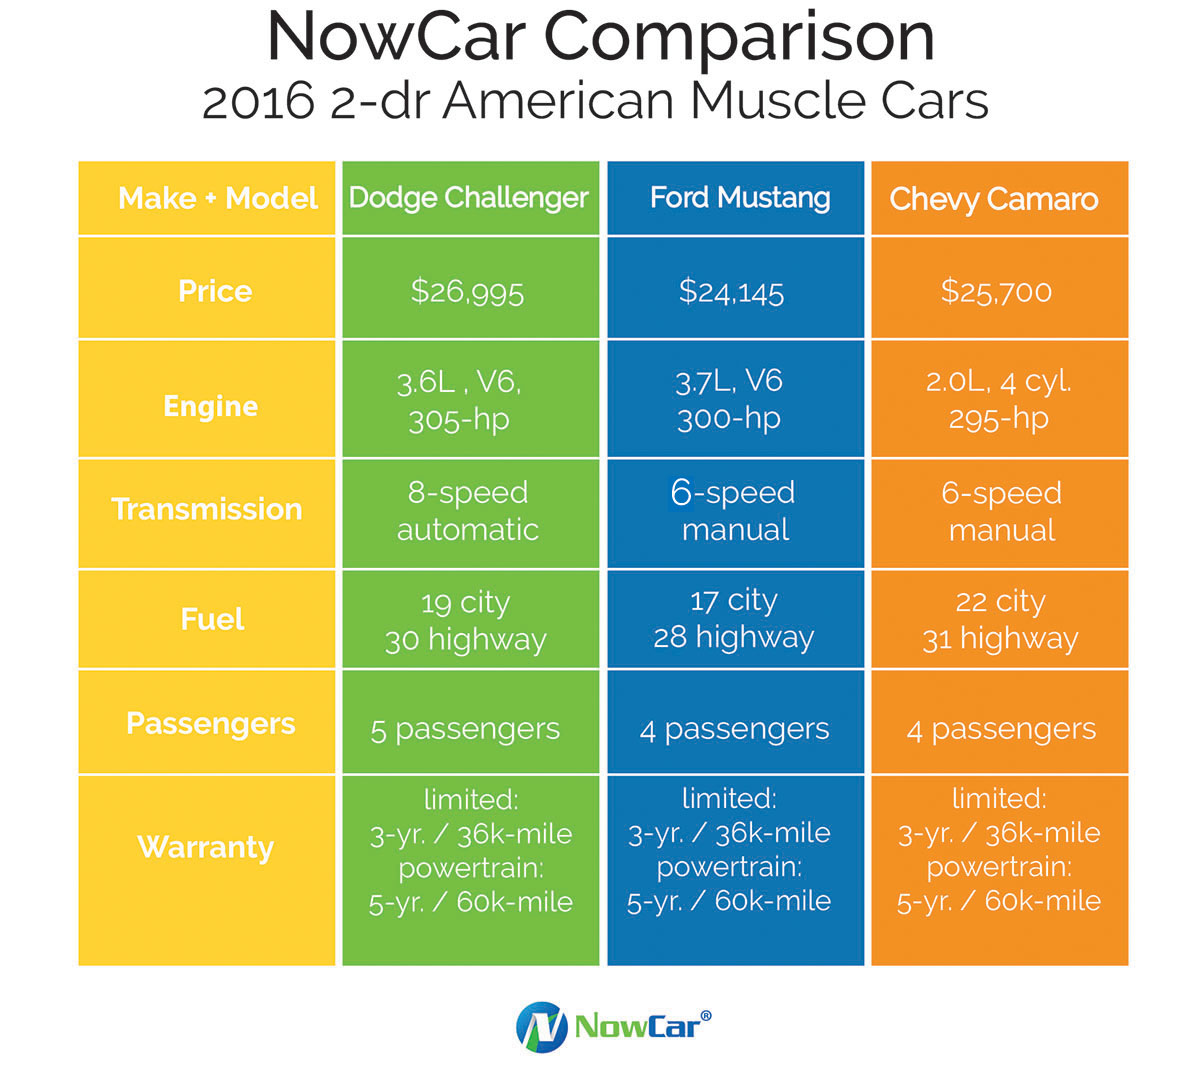 American Muscle car comparison, Ford Mustang, Dodge Challenger, Chevy Camaro